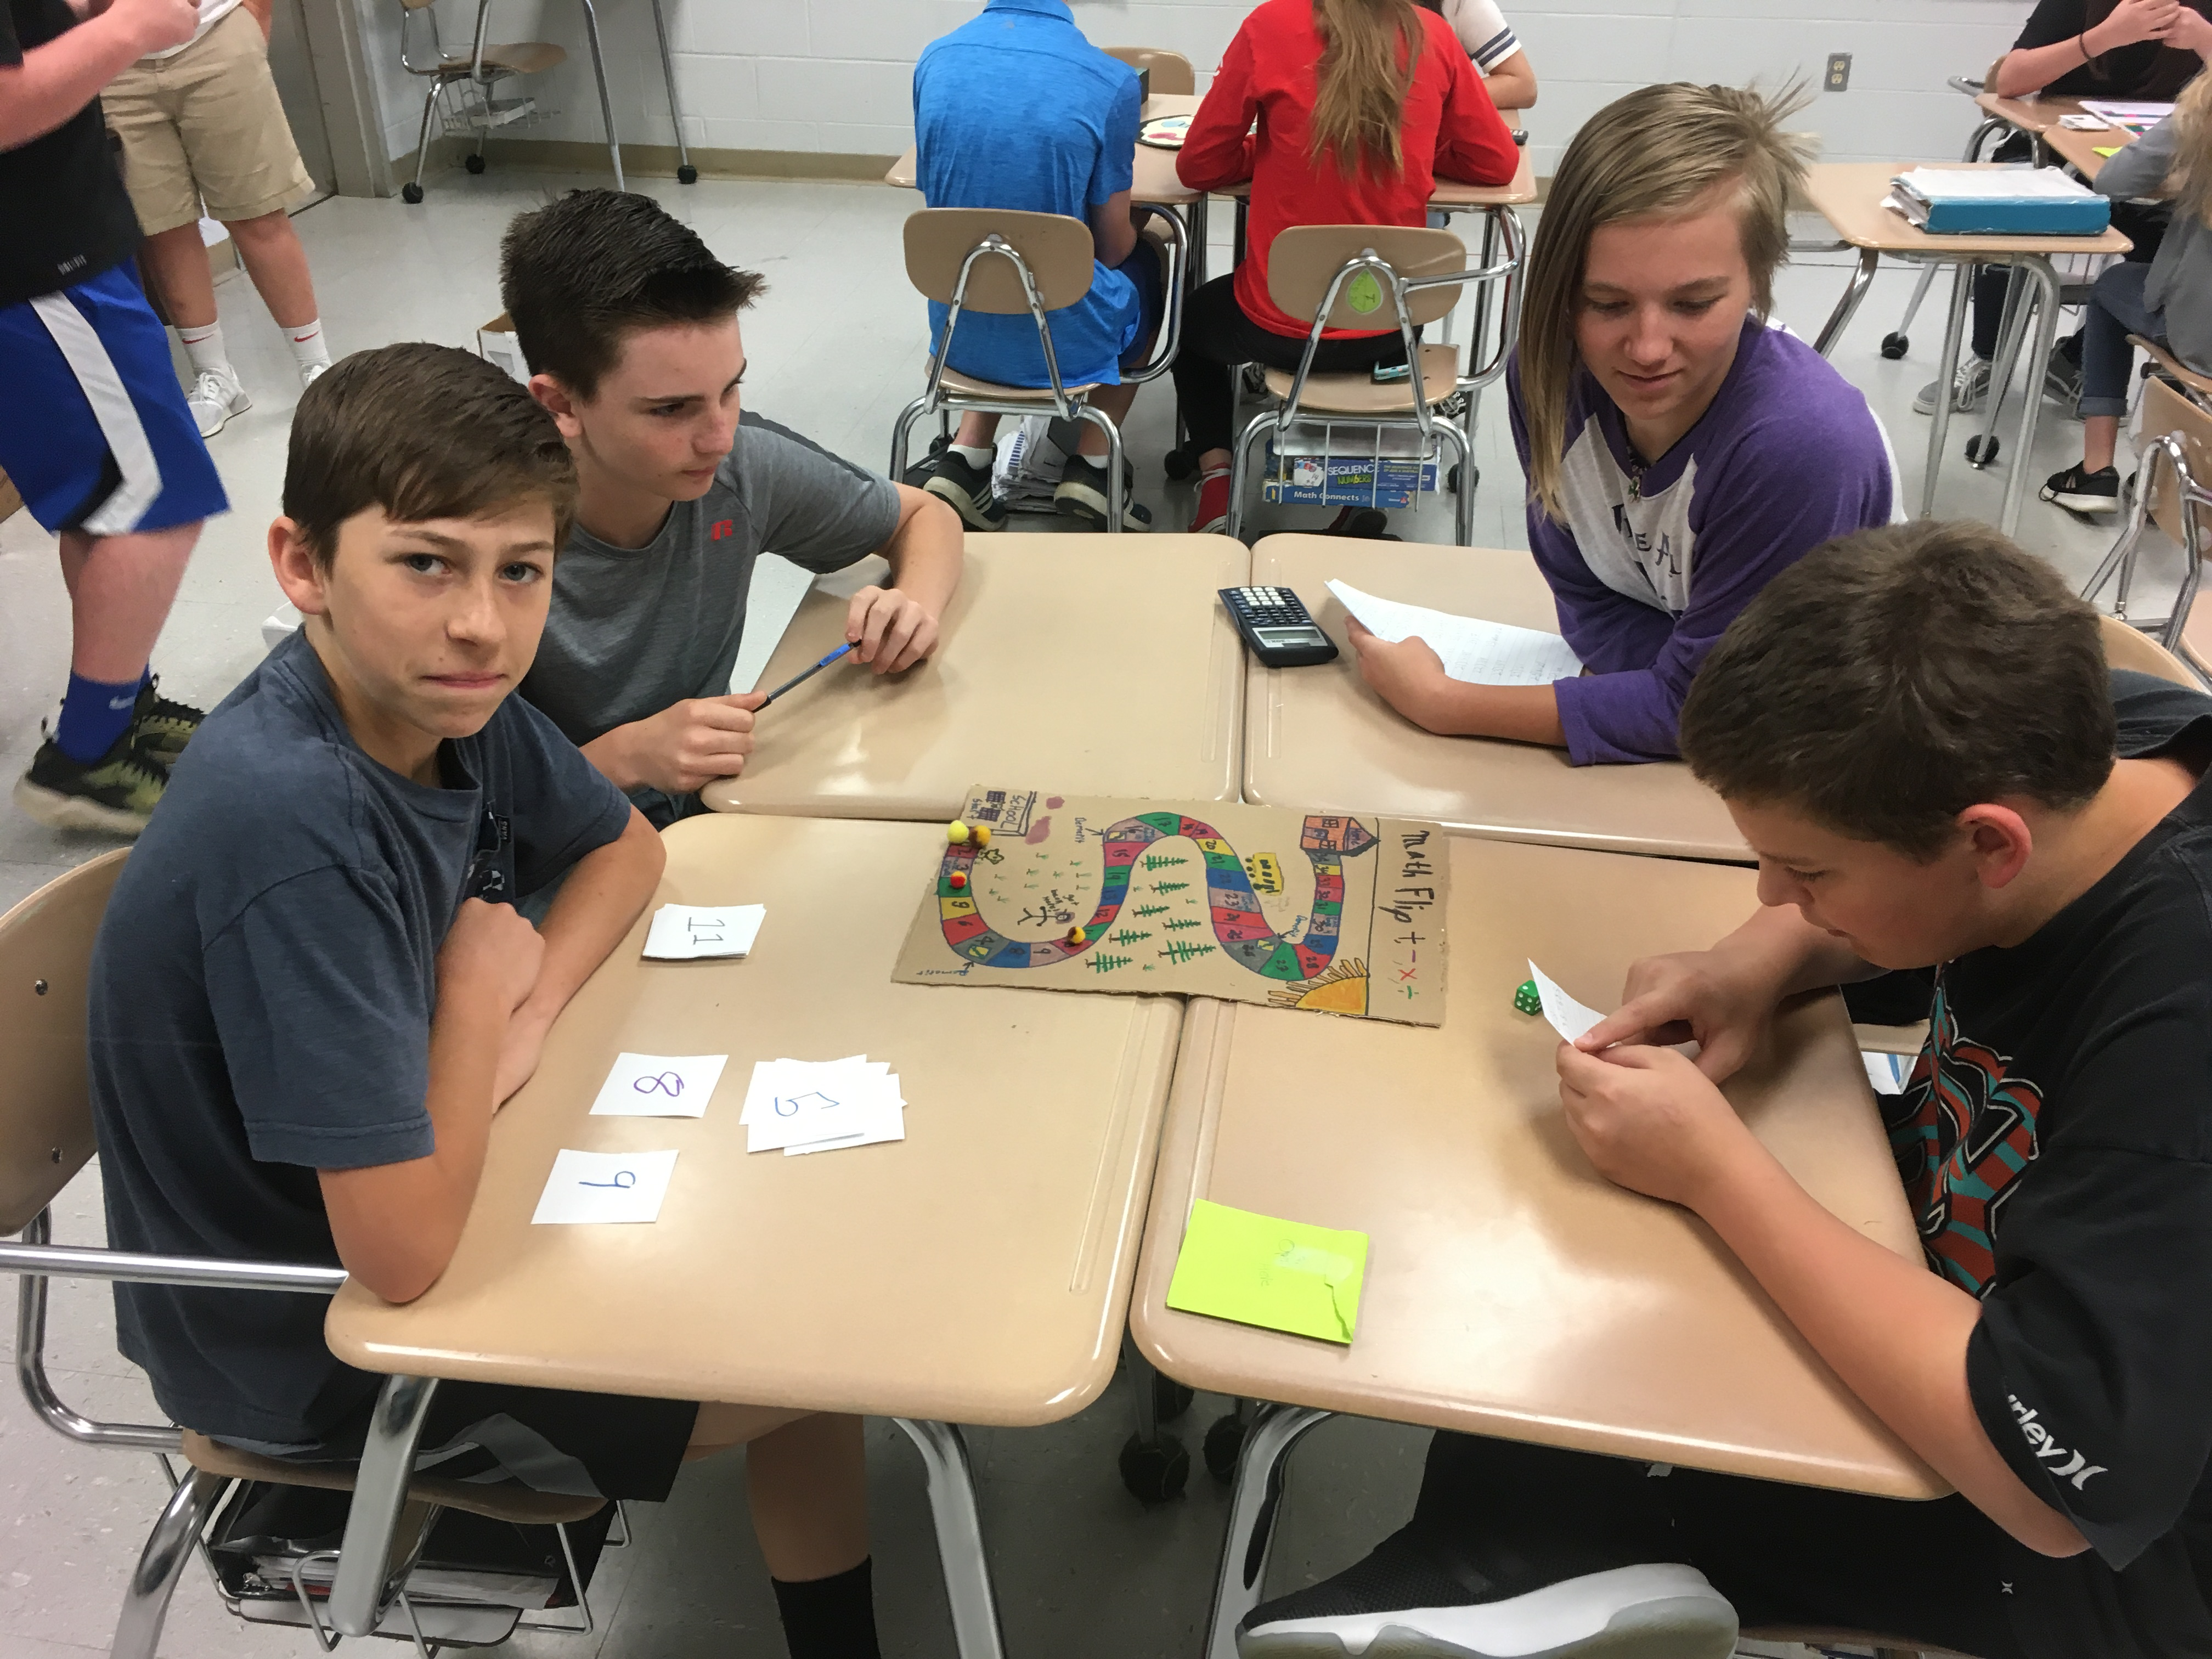 Math Students Collaboratively Create ... board games so they may see math in games.  (05/18)